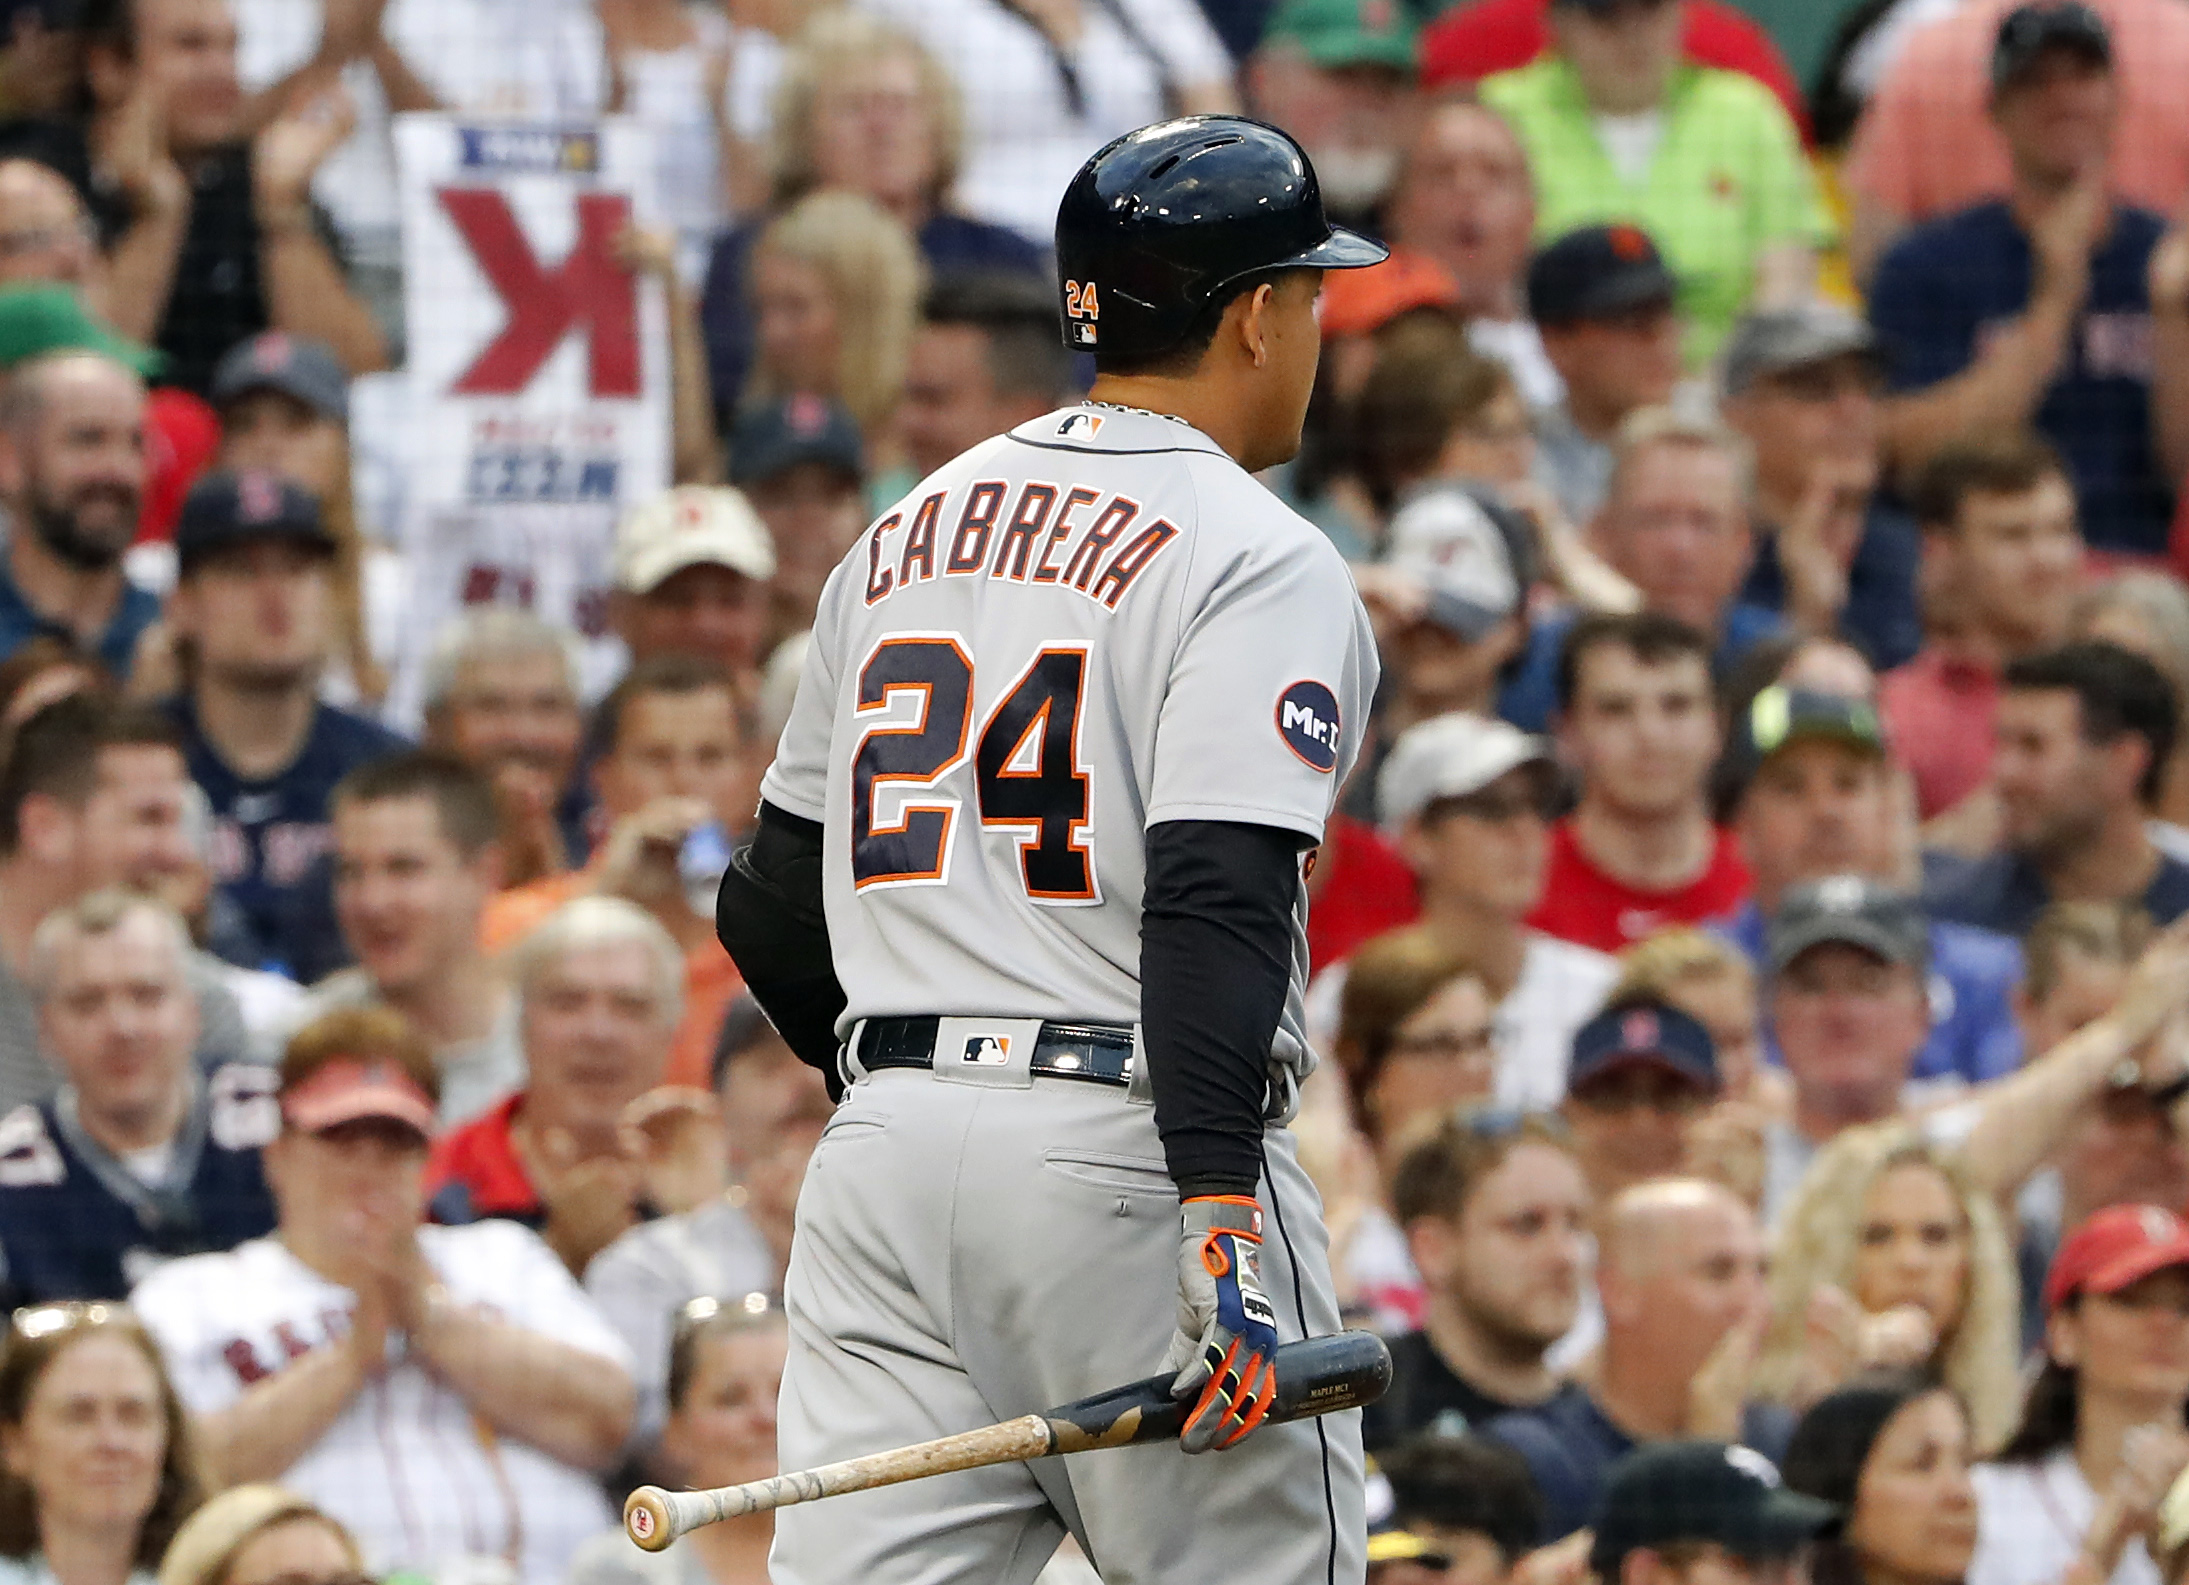 Nfl expected to consider future sunday night playoff games espn - Jun 10 2017 Boston Ma Usa Detroit Tigers First Baseman Miguel Cabrera 24 Heads Back To The Dugout After Striking Out Looking Against The Boston Red